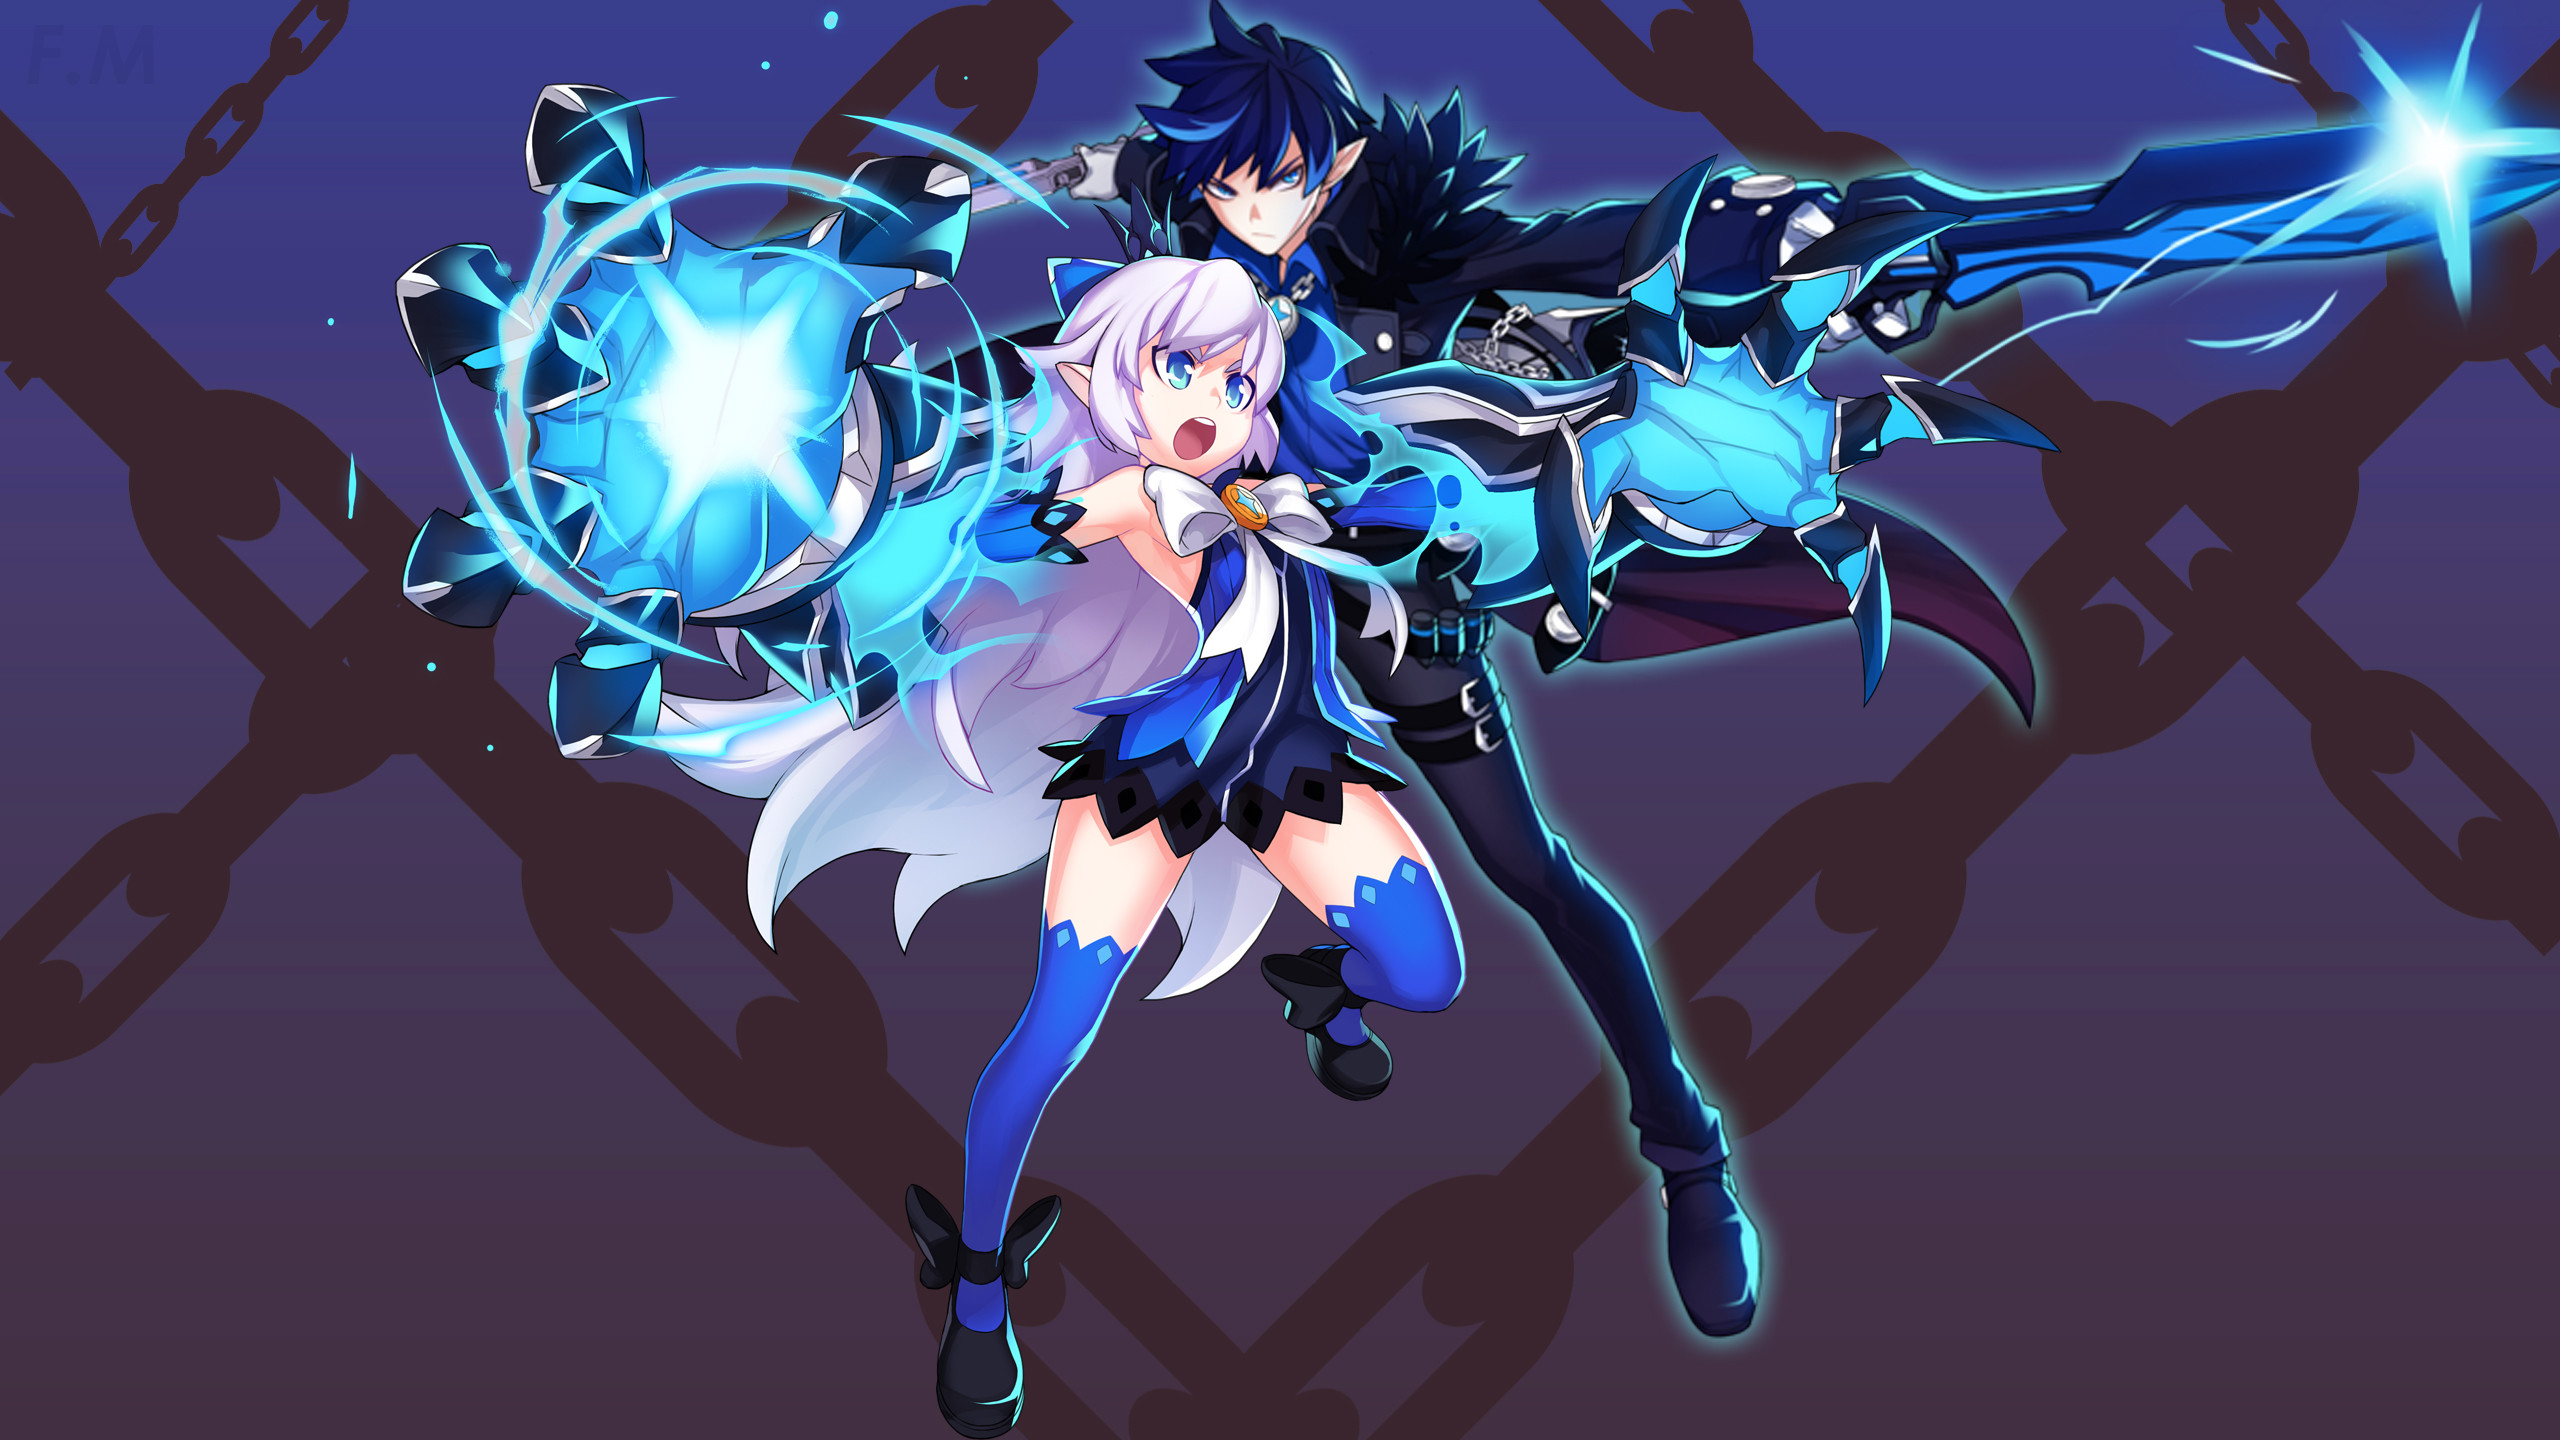 Elsword Lord Knight Wallpaper 63 images 2560x1440